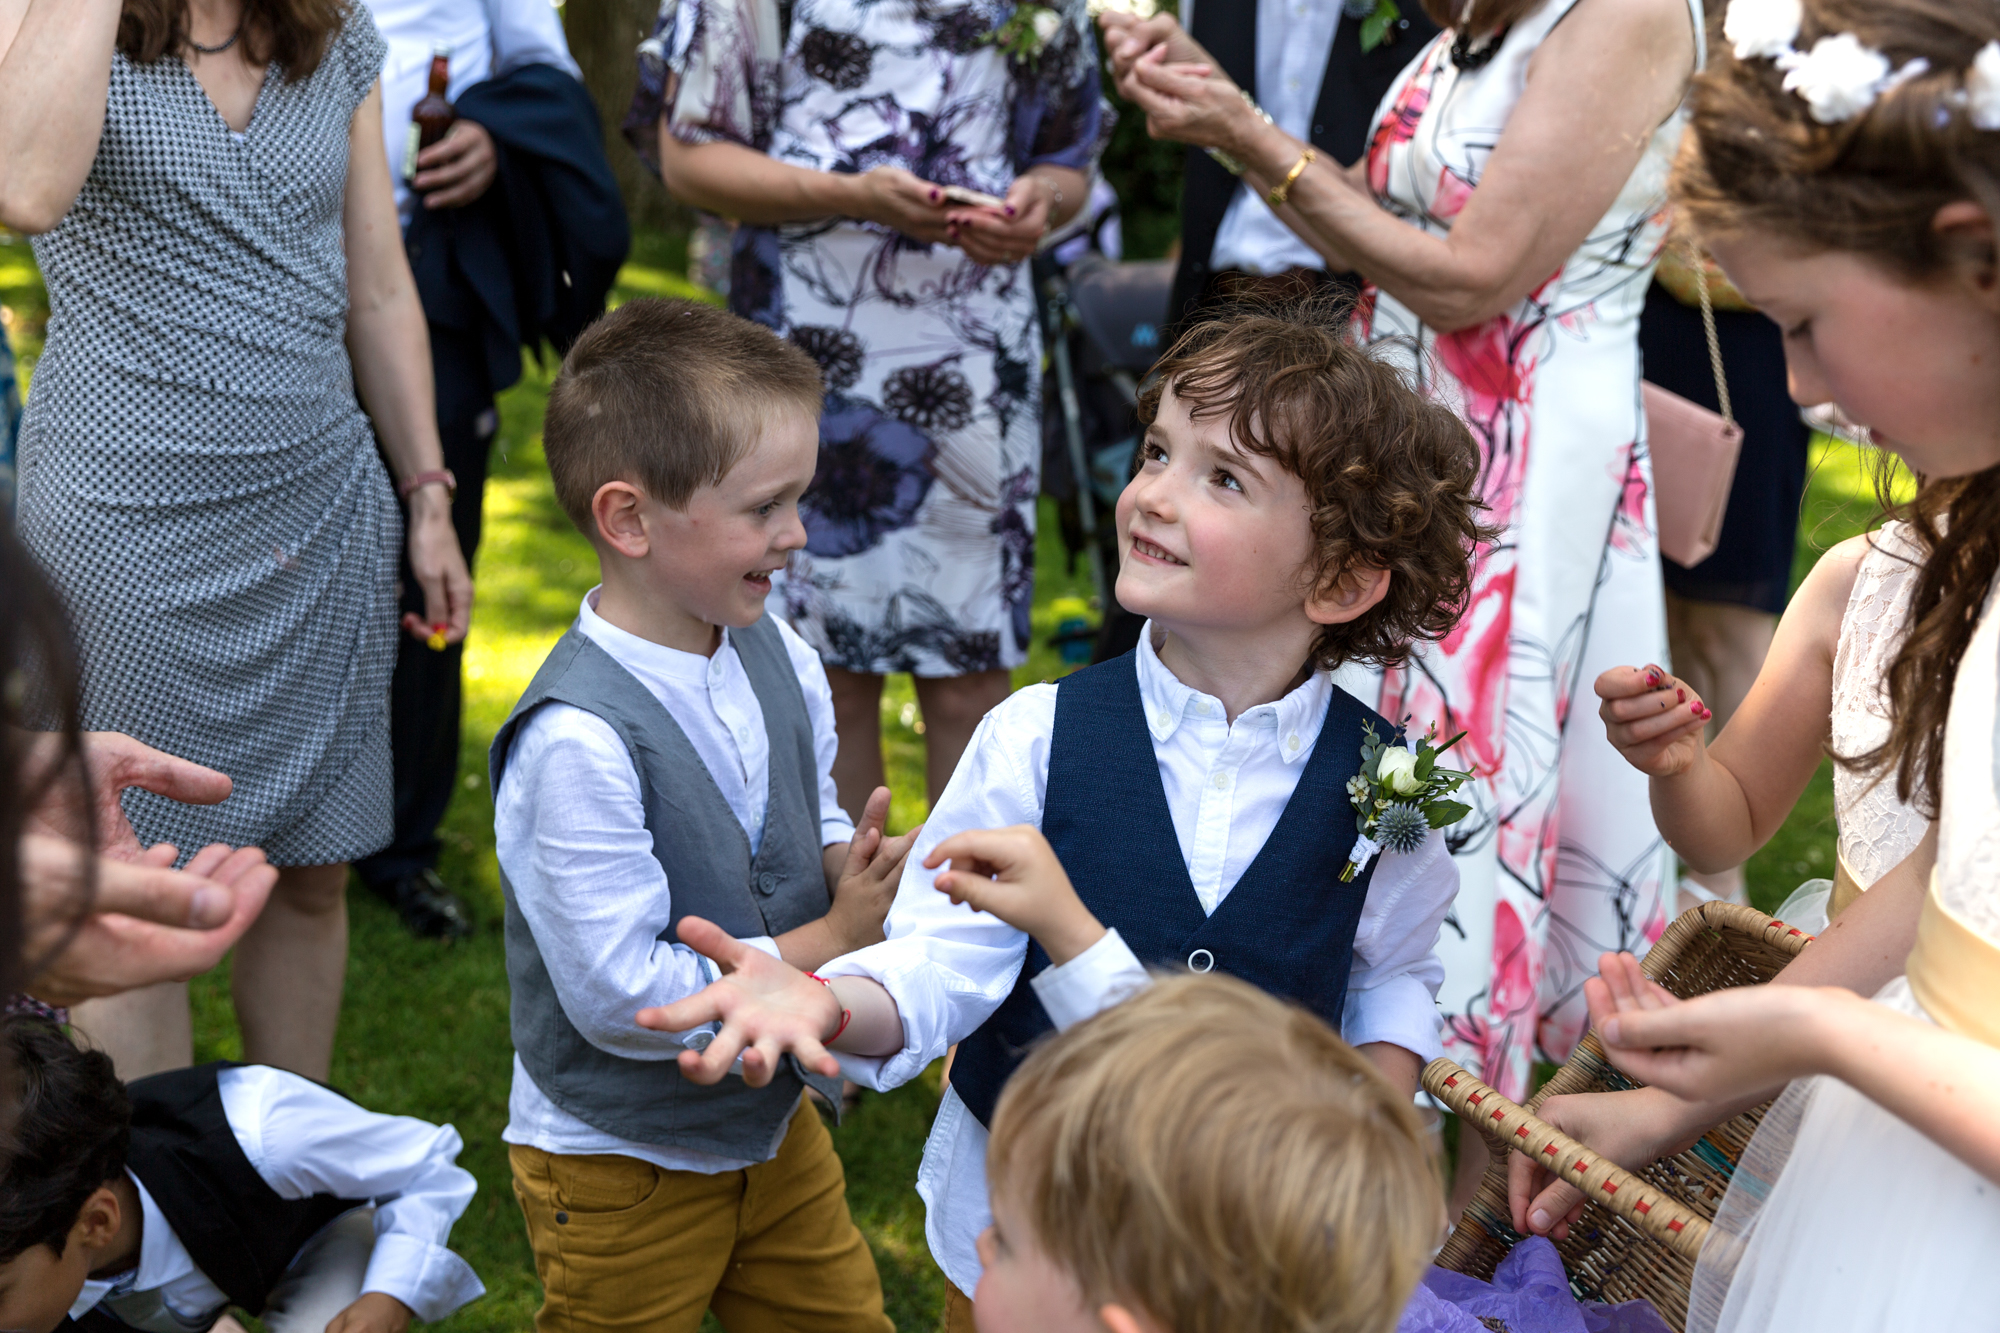 South wales wedding photographer, Caerphilly, cardiff